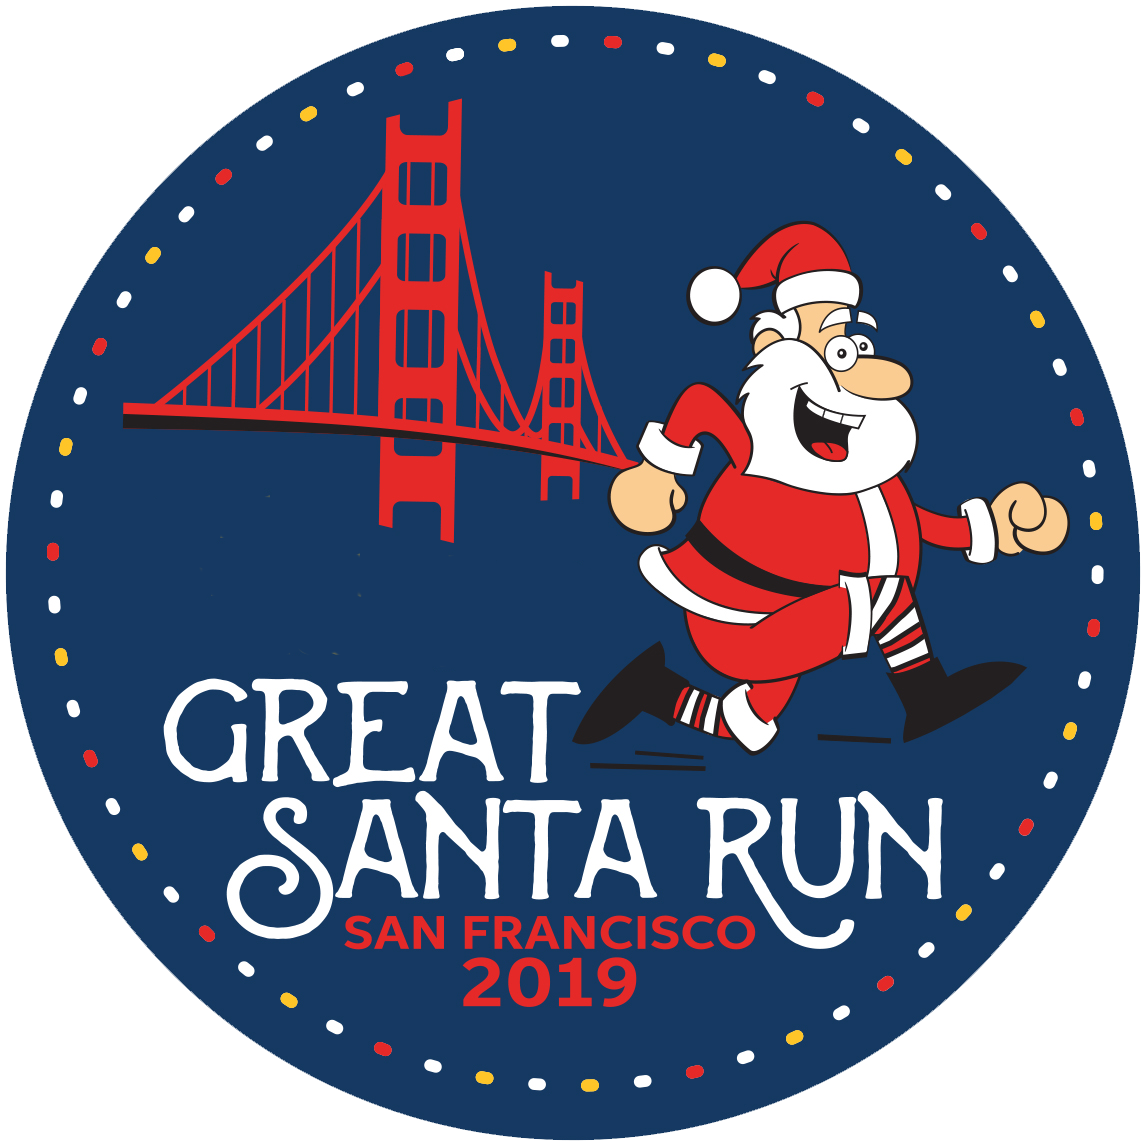 Great Santa Run San Francisco